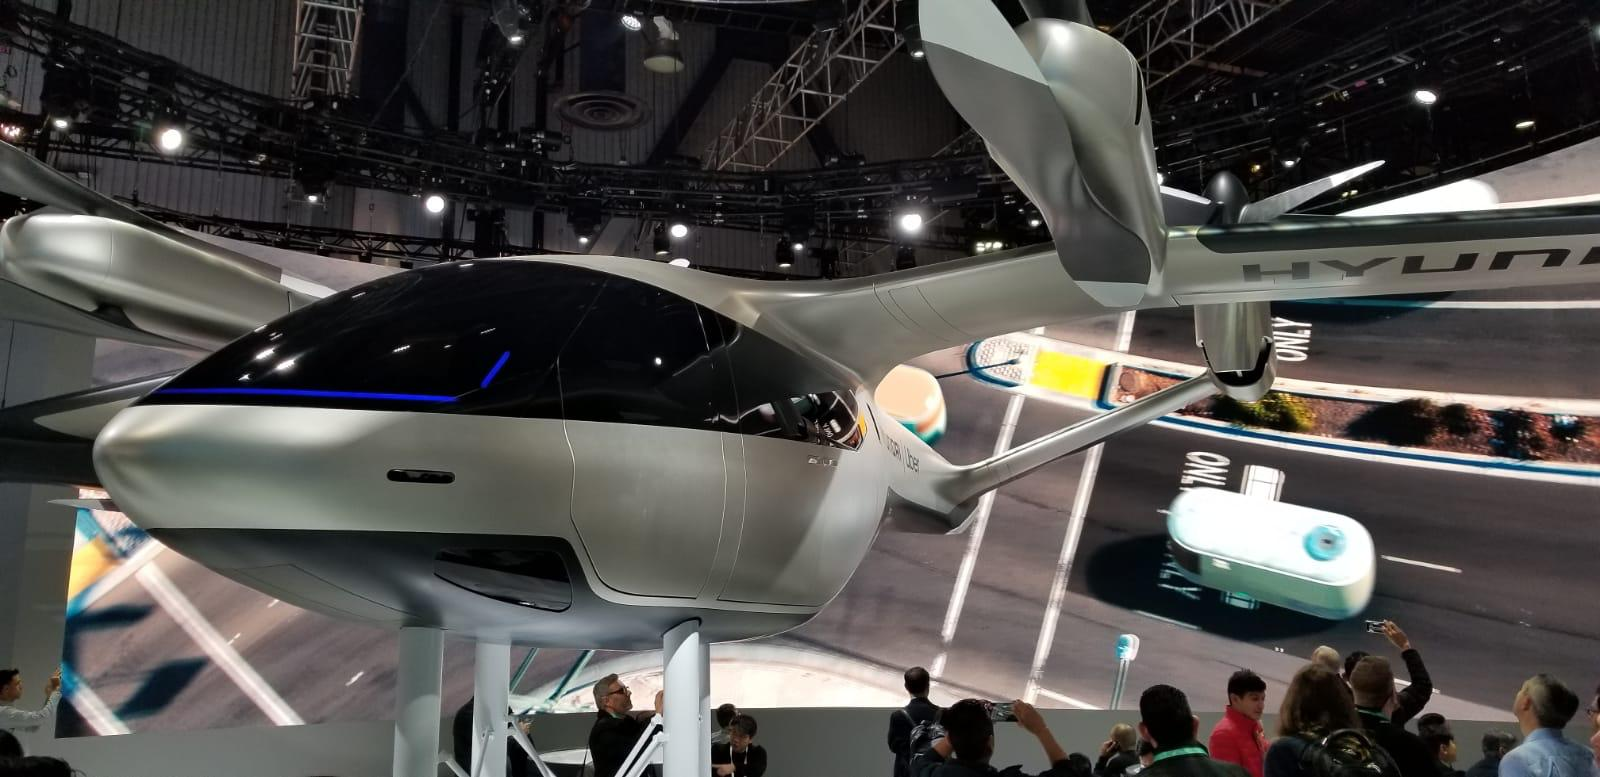 Hyundai presented a new invention of the next generation, Air taxi